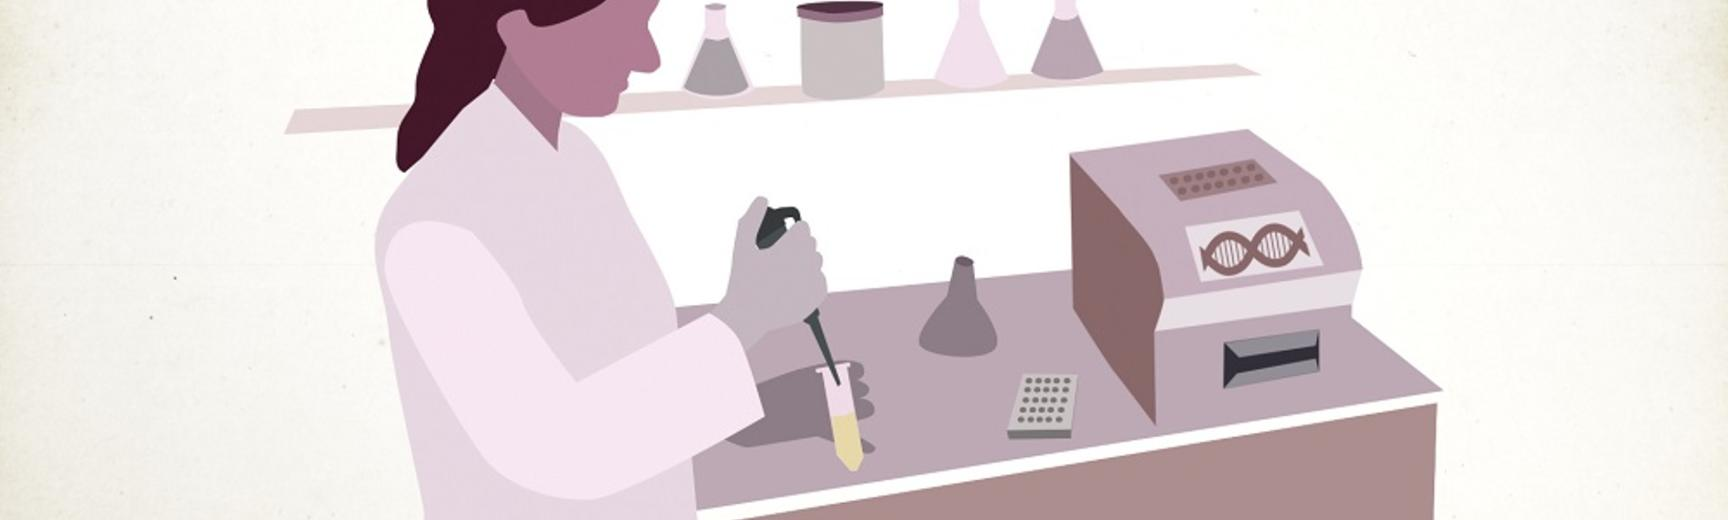 Schematic drawing of woman holding pipette and test tube in lab